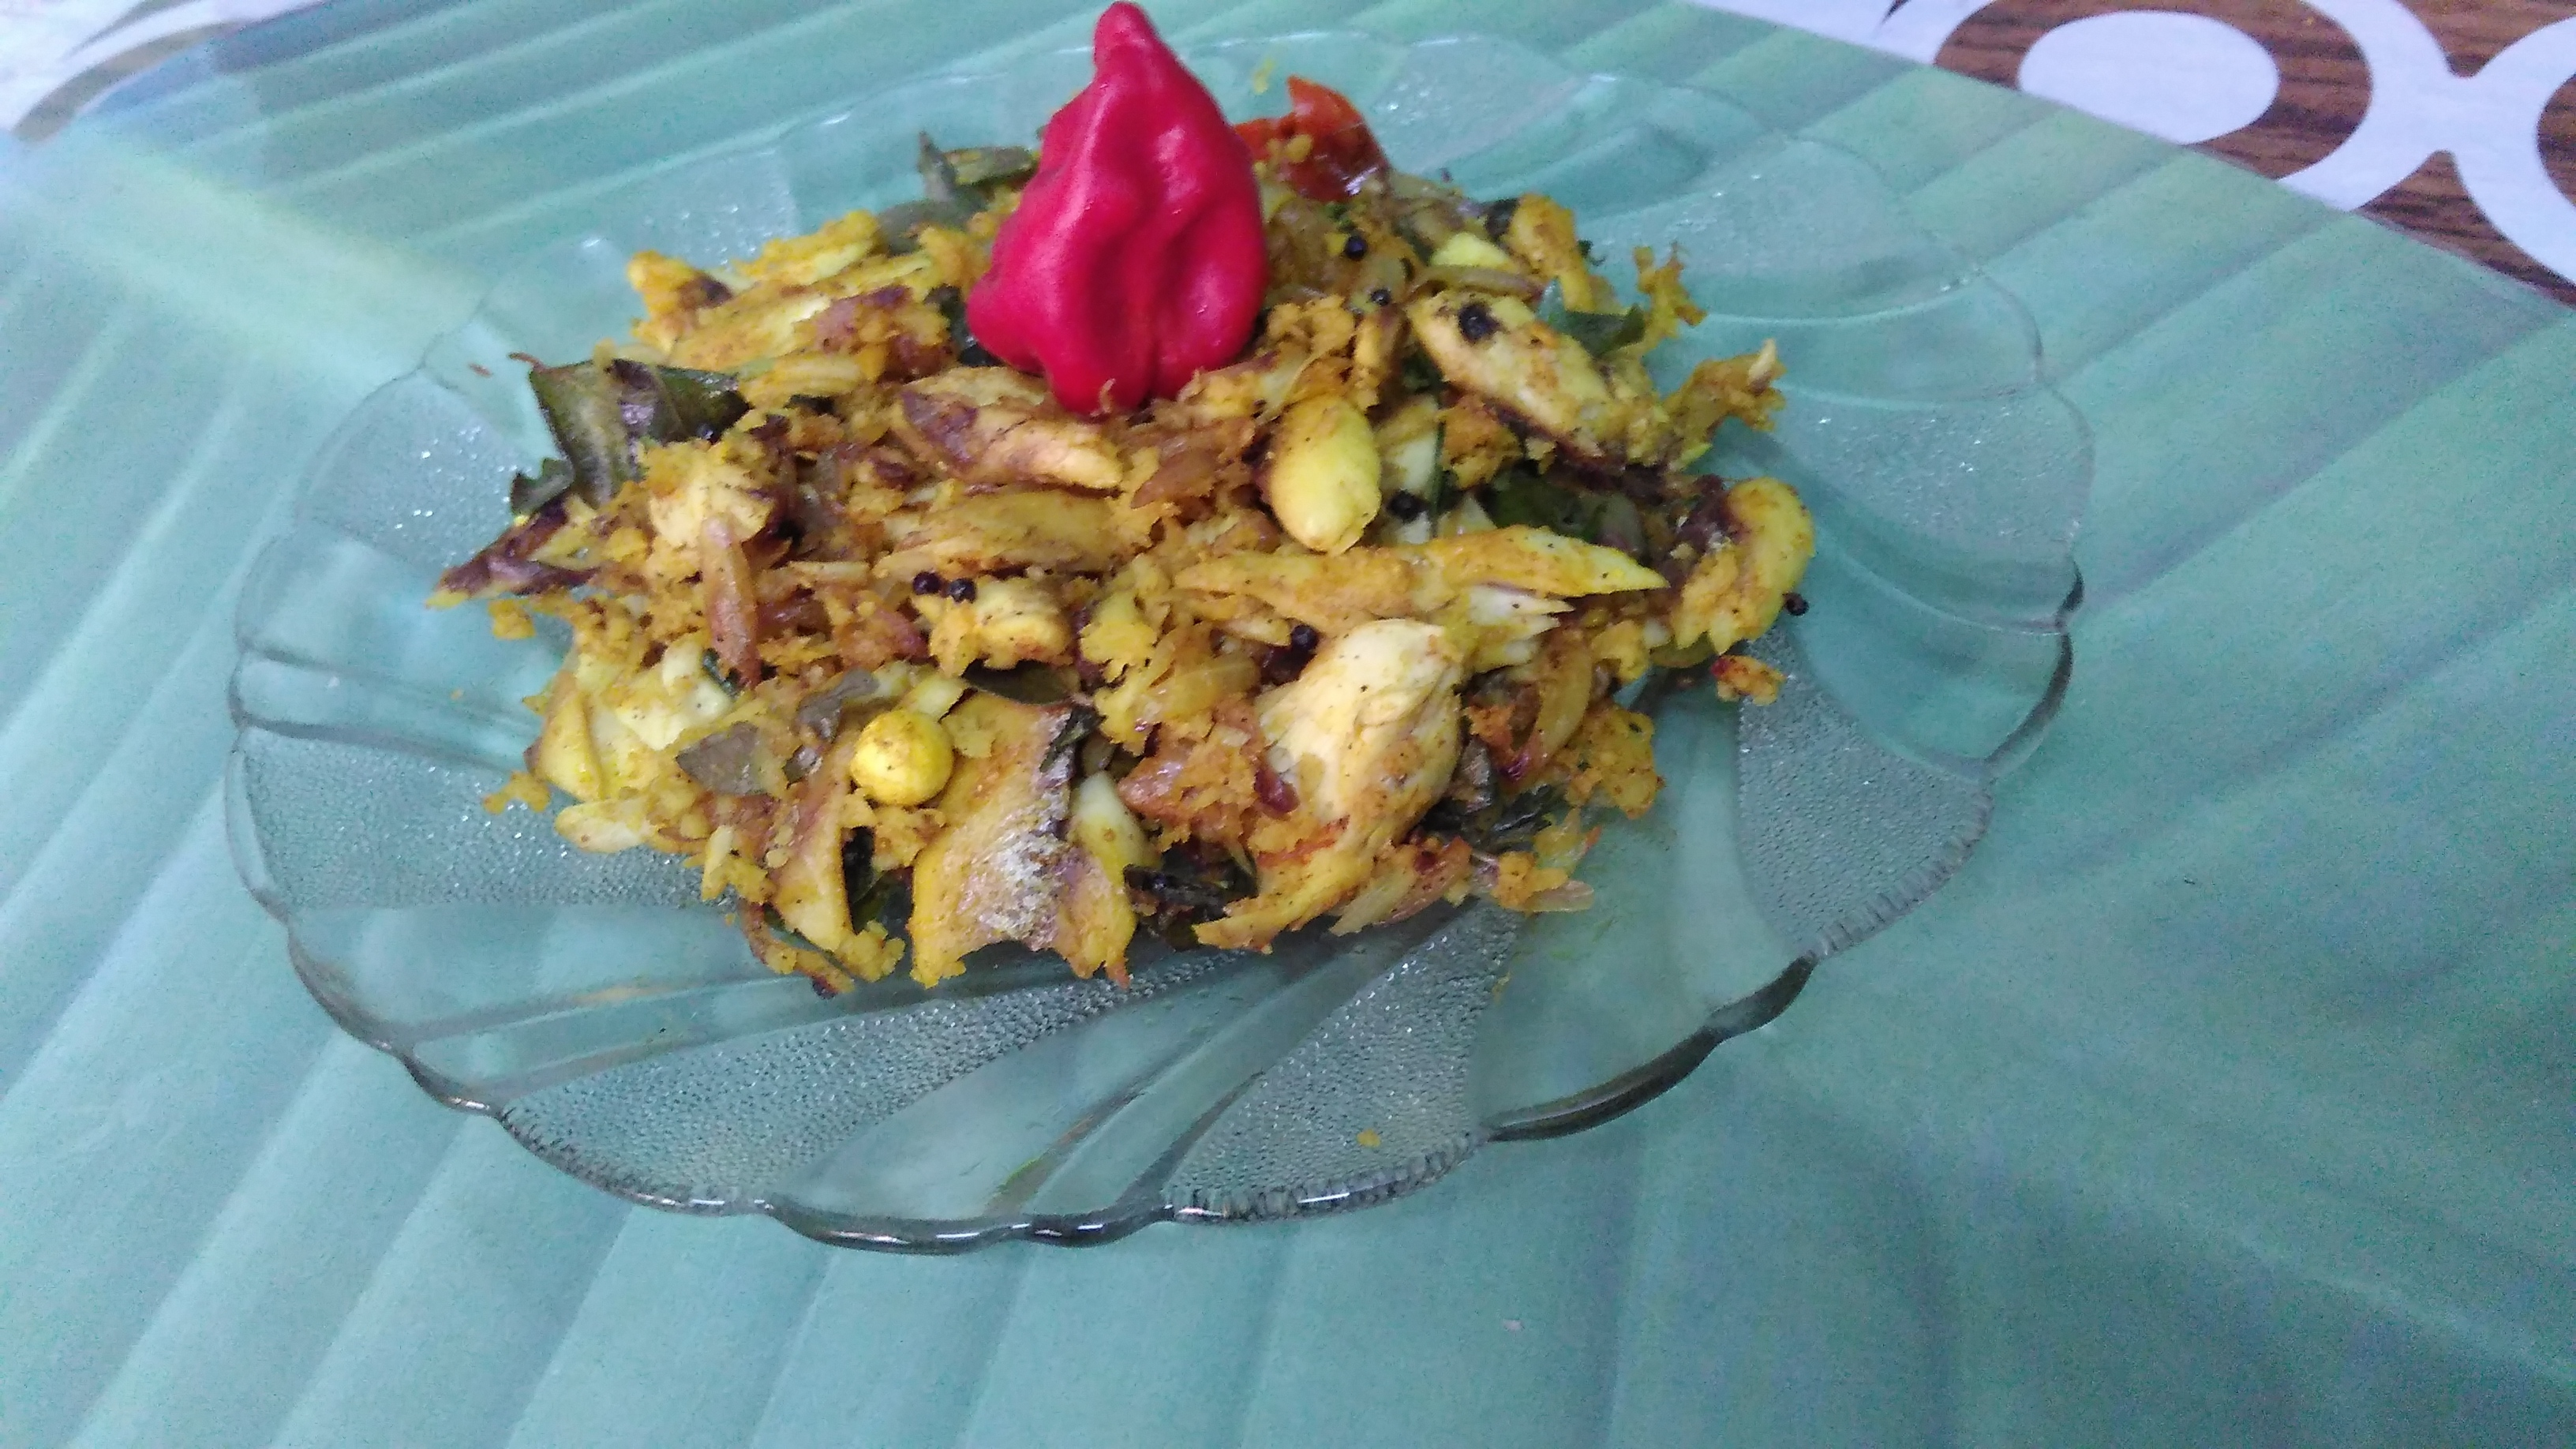 Fish Coconut Stir Fry